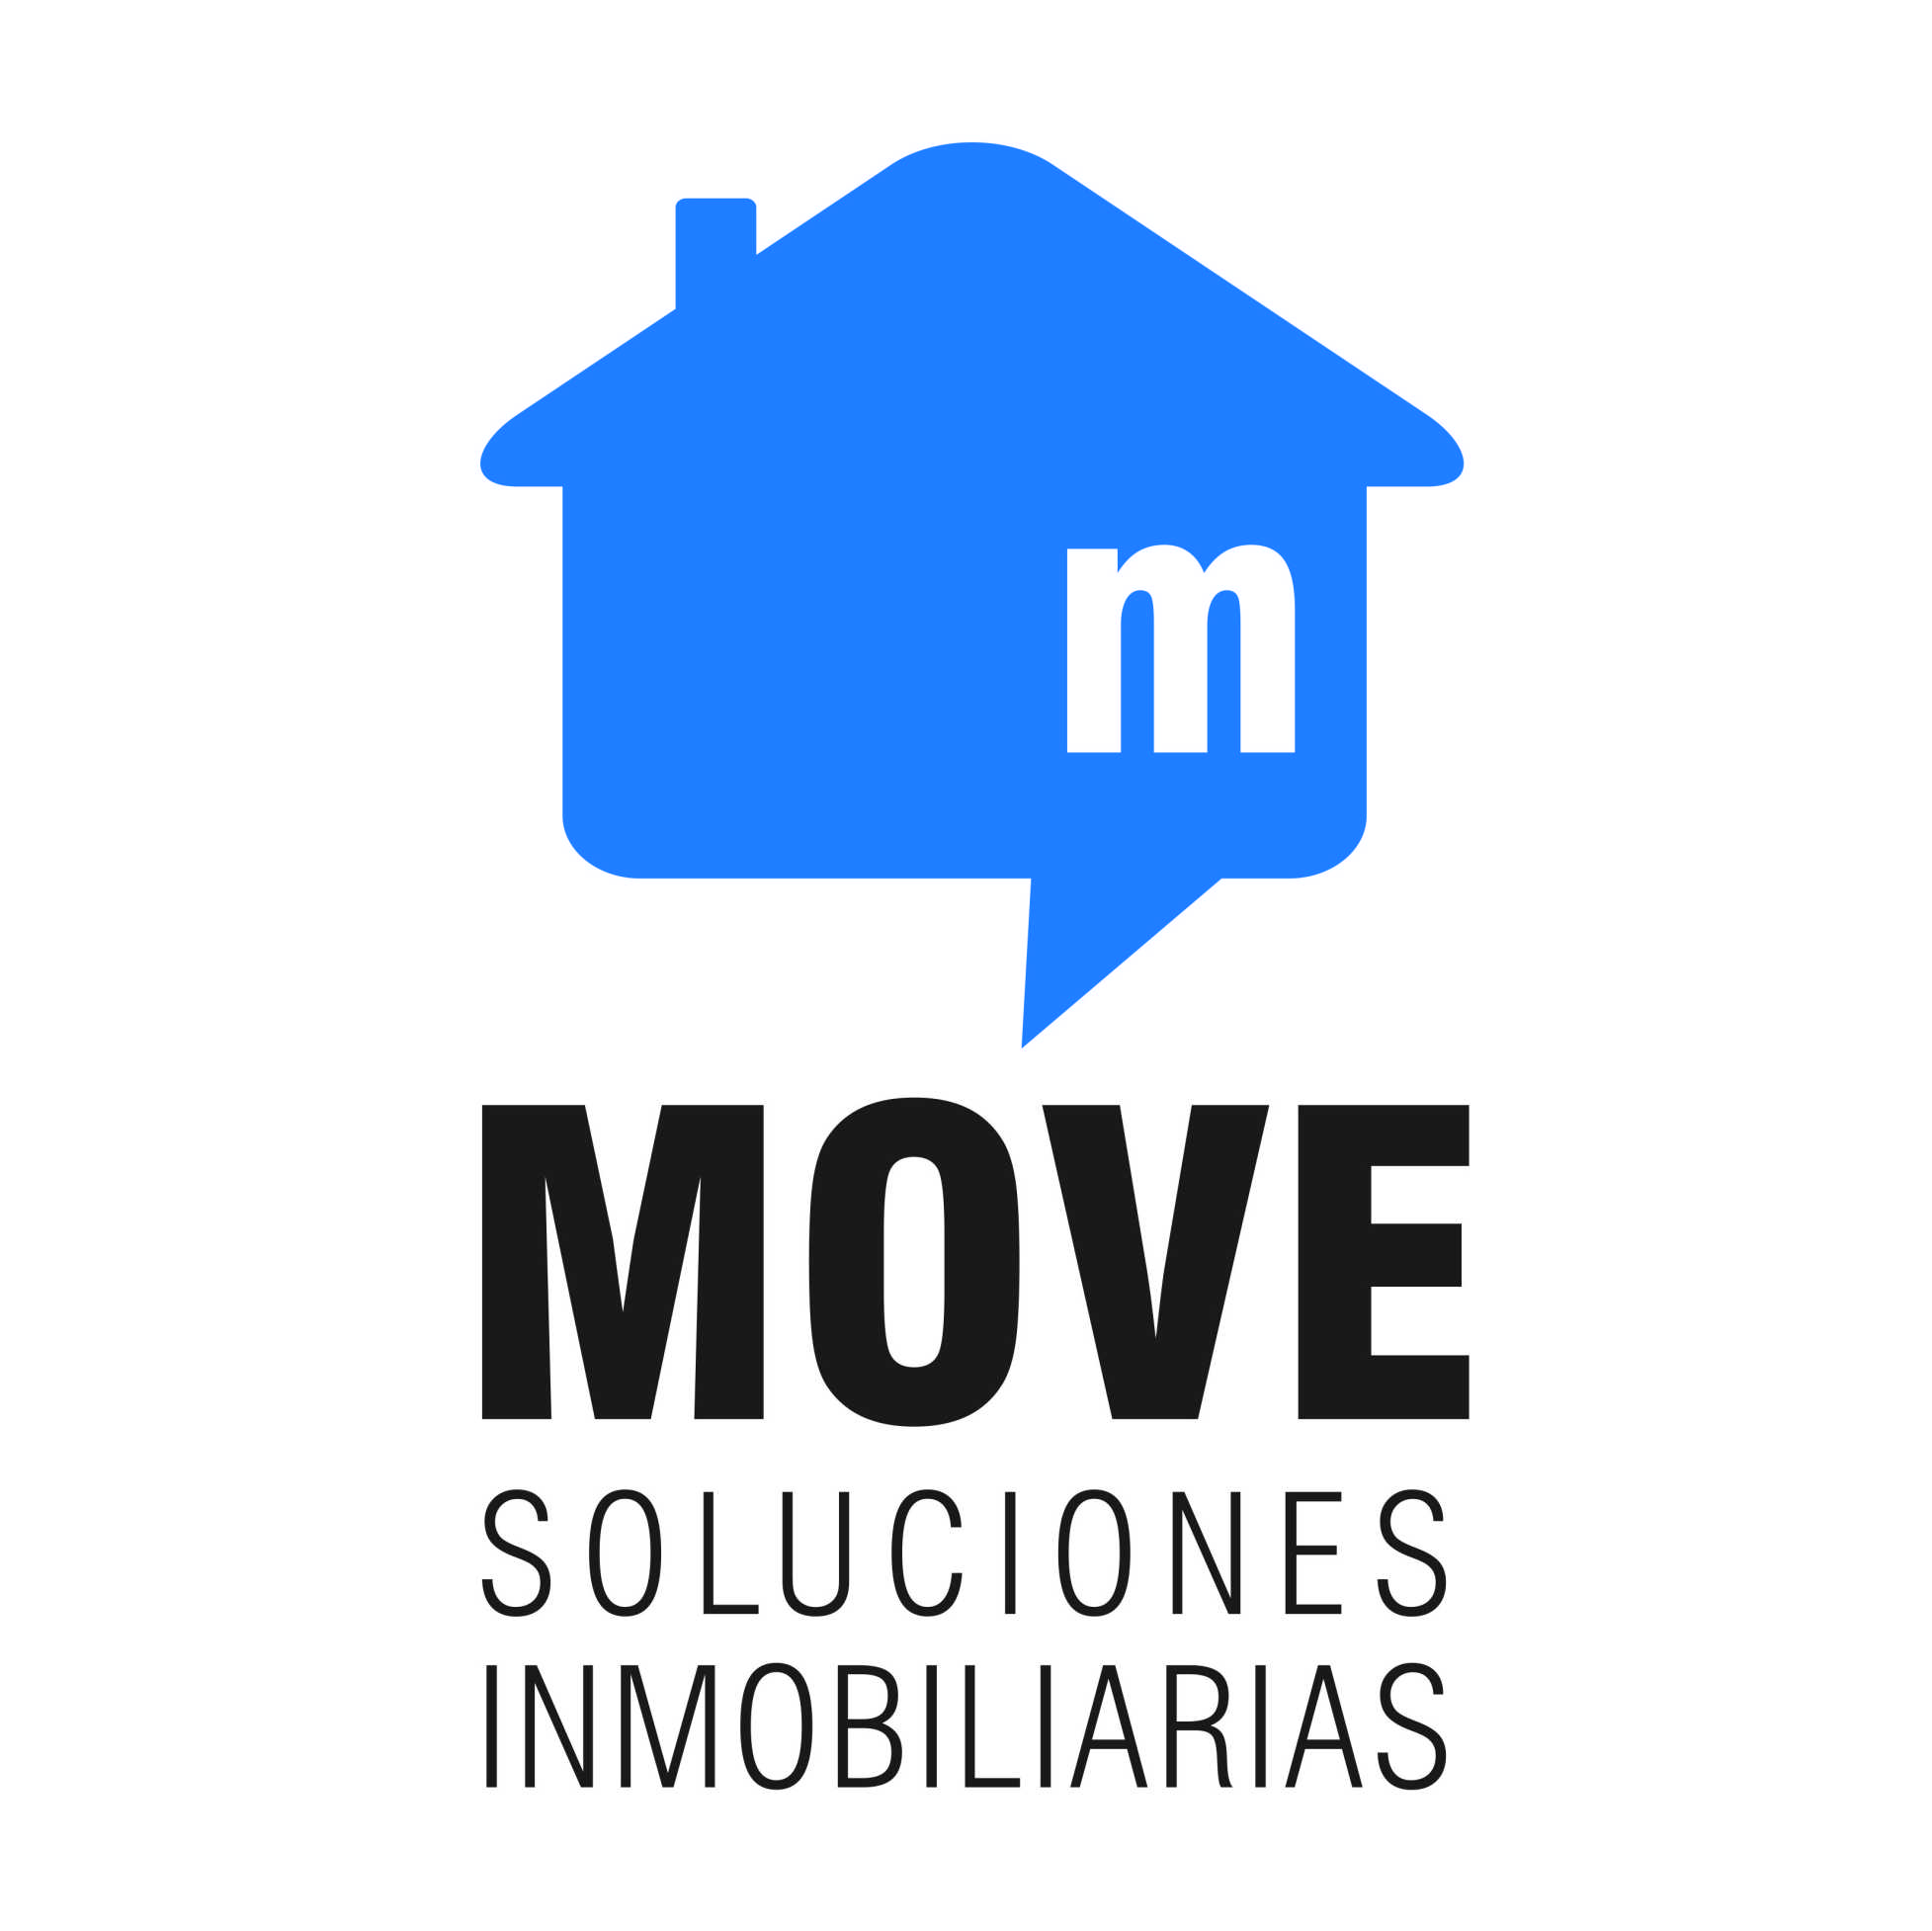 MOVE INMUEBLES